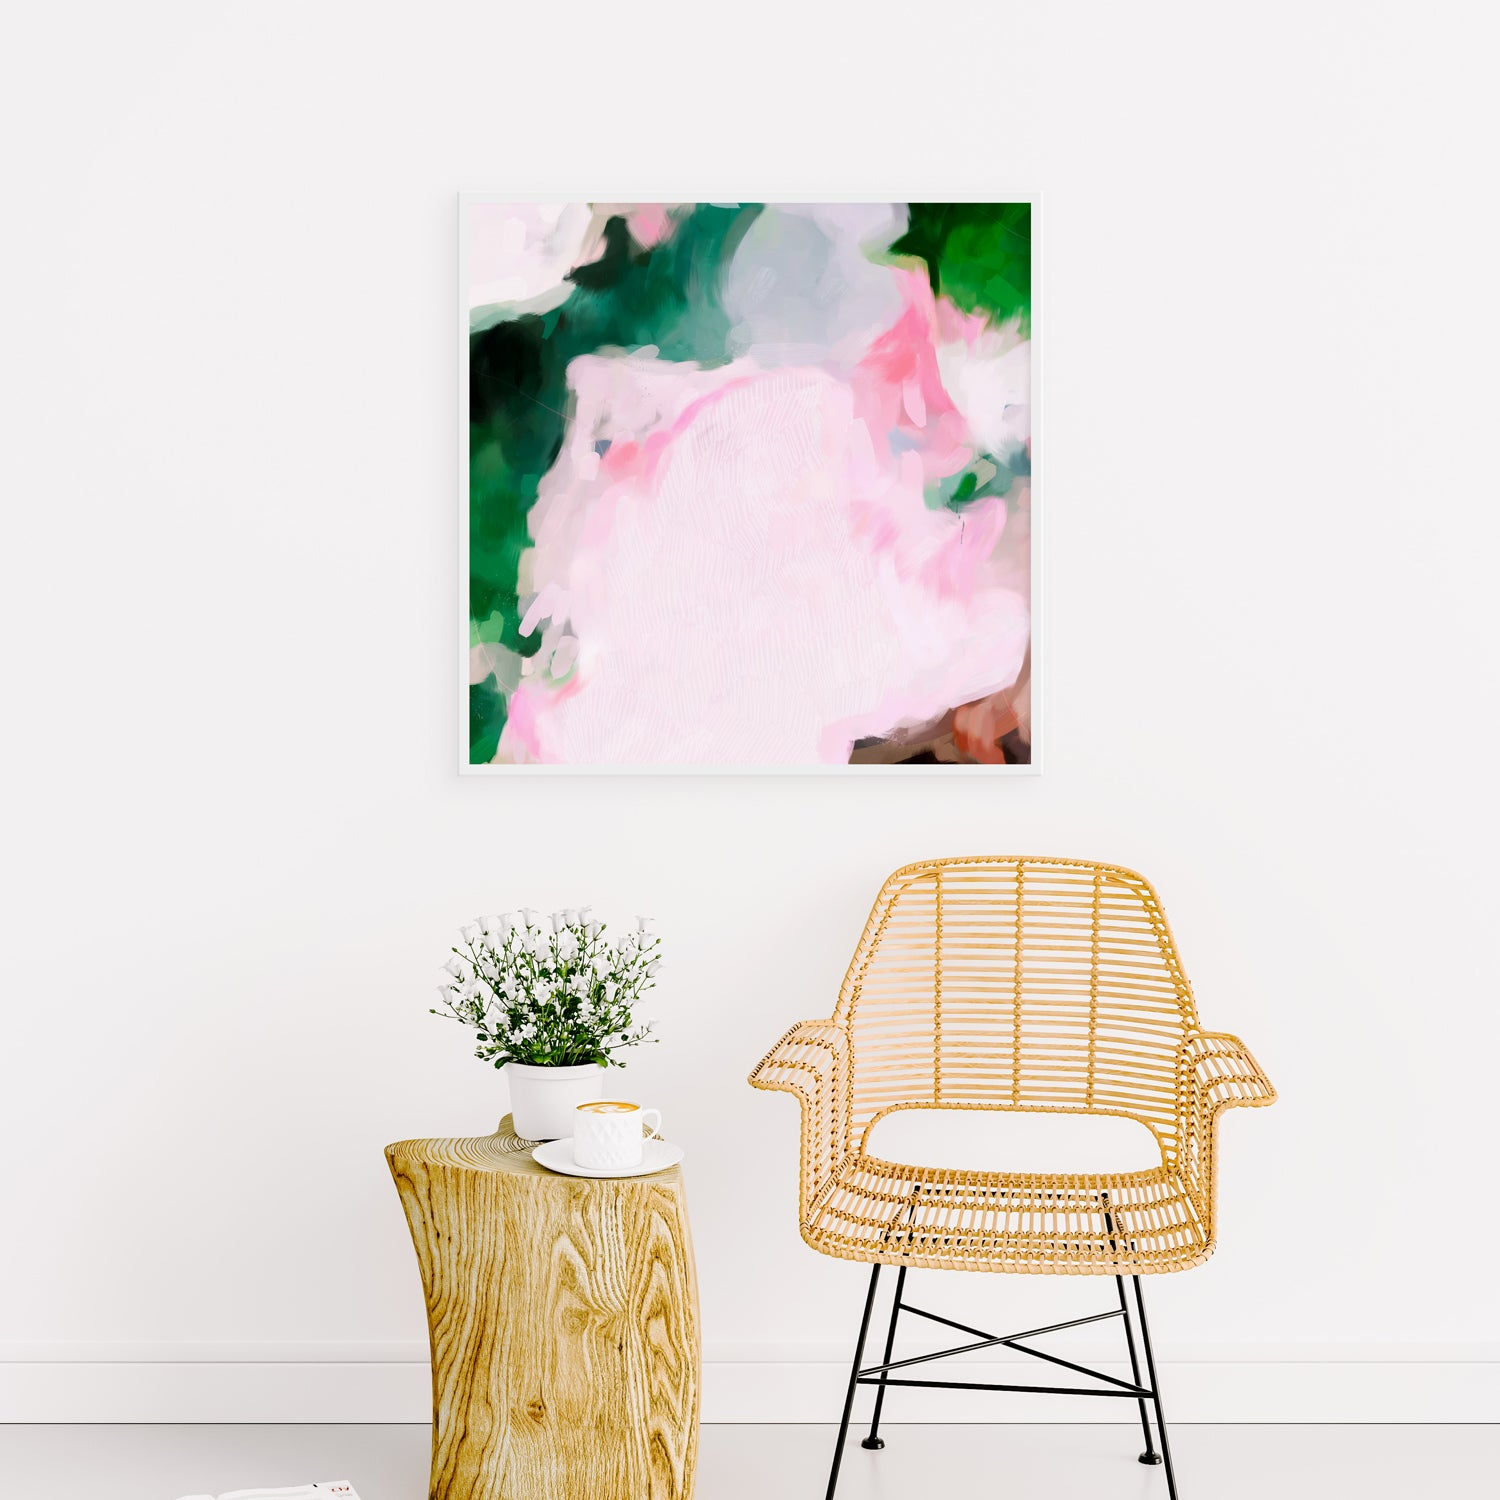 Jolie, large square pink and green abstract art print by Parima Studio